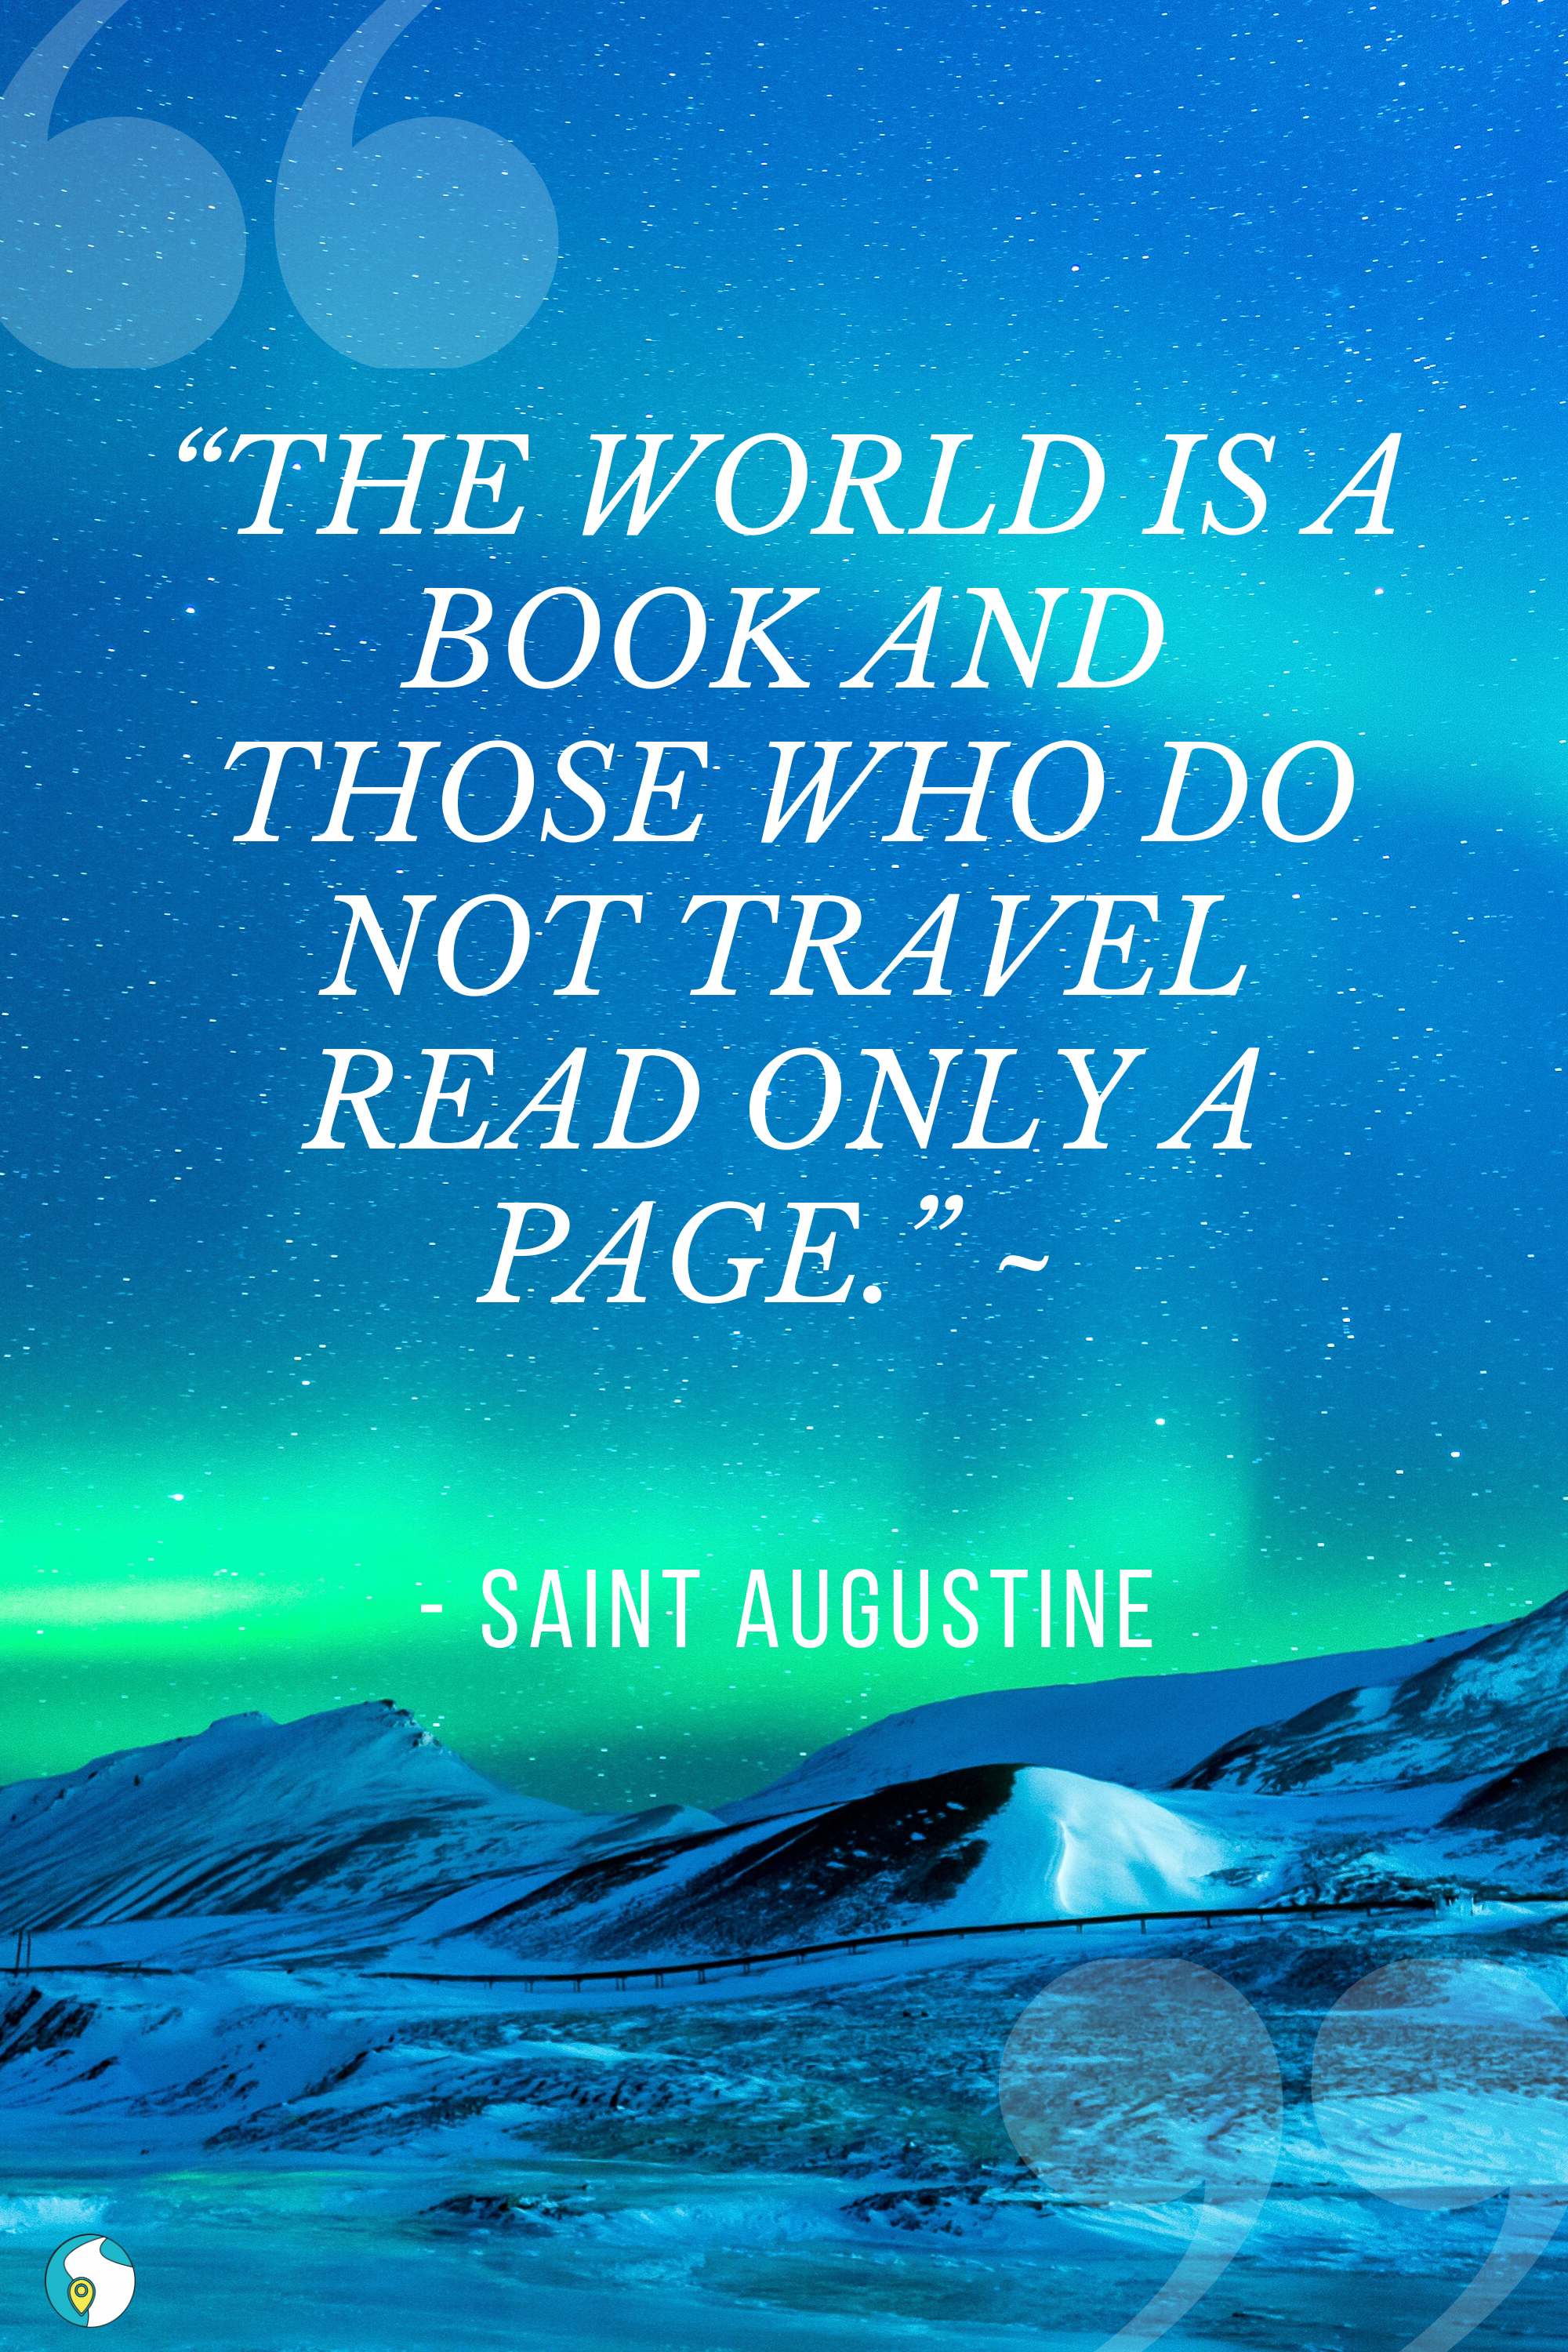 Dreaming Of Travelling Again Here S One Of My Favourite Travel Quotes Travel Quotes Travel Inspiration Travel Fun